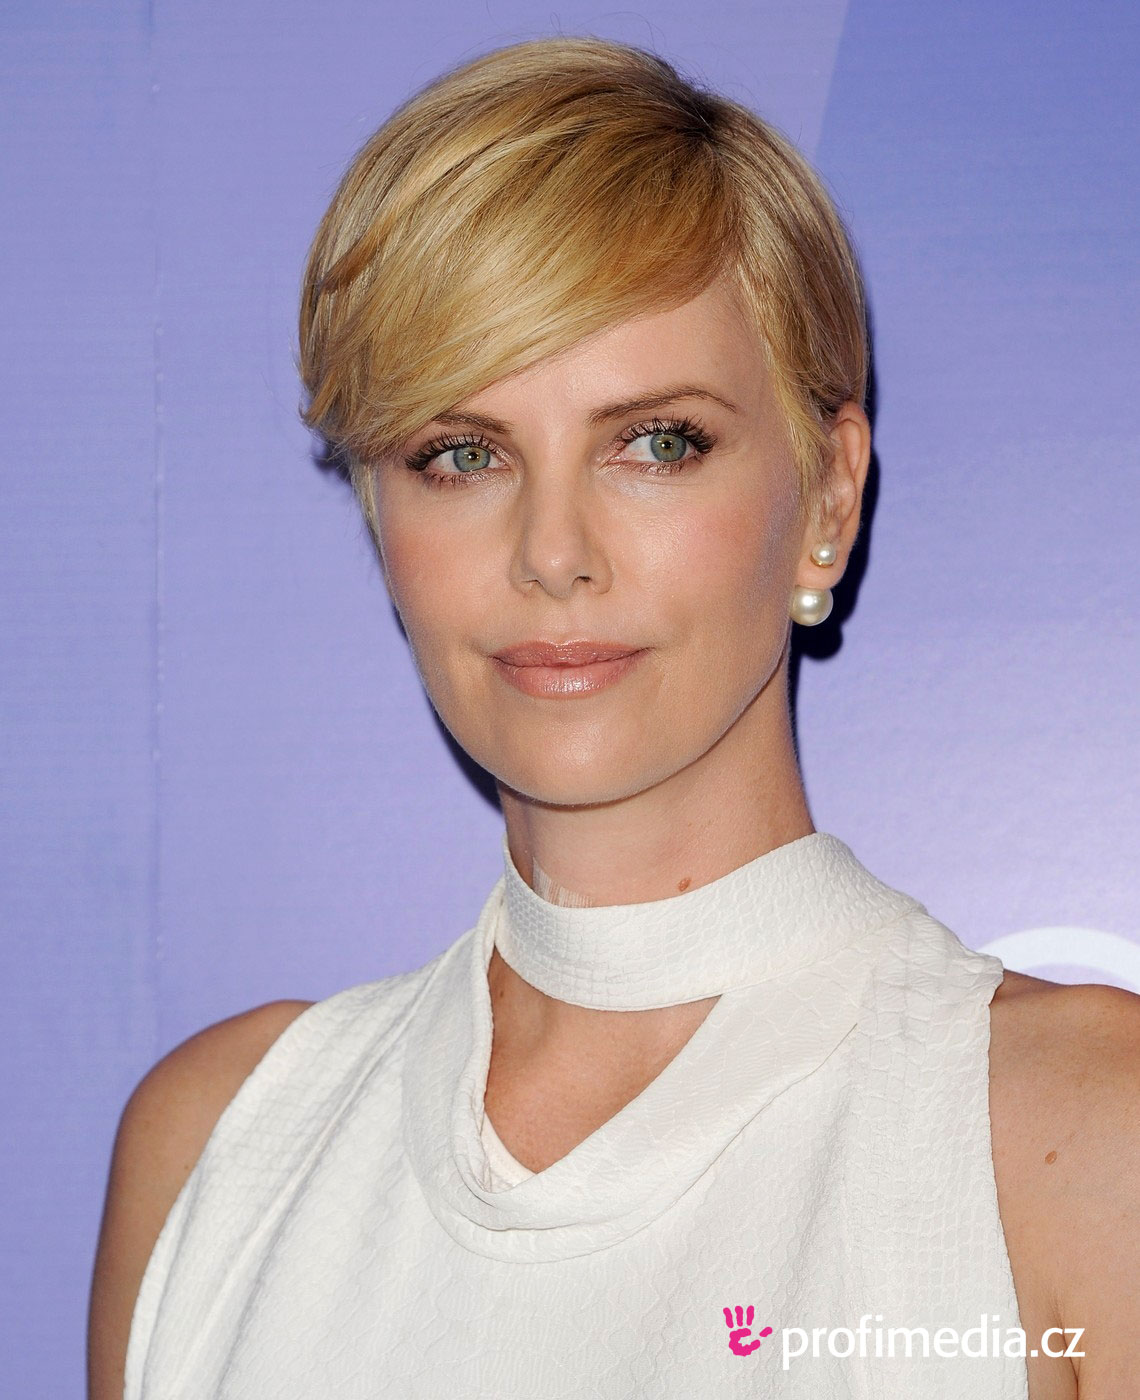 Charlize Theron Short Hair Style by wearticles.com